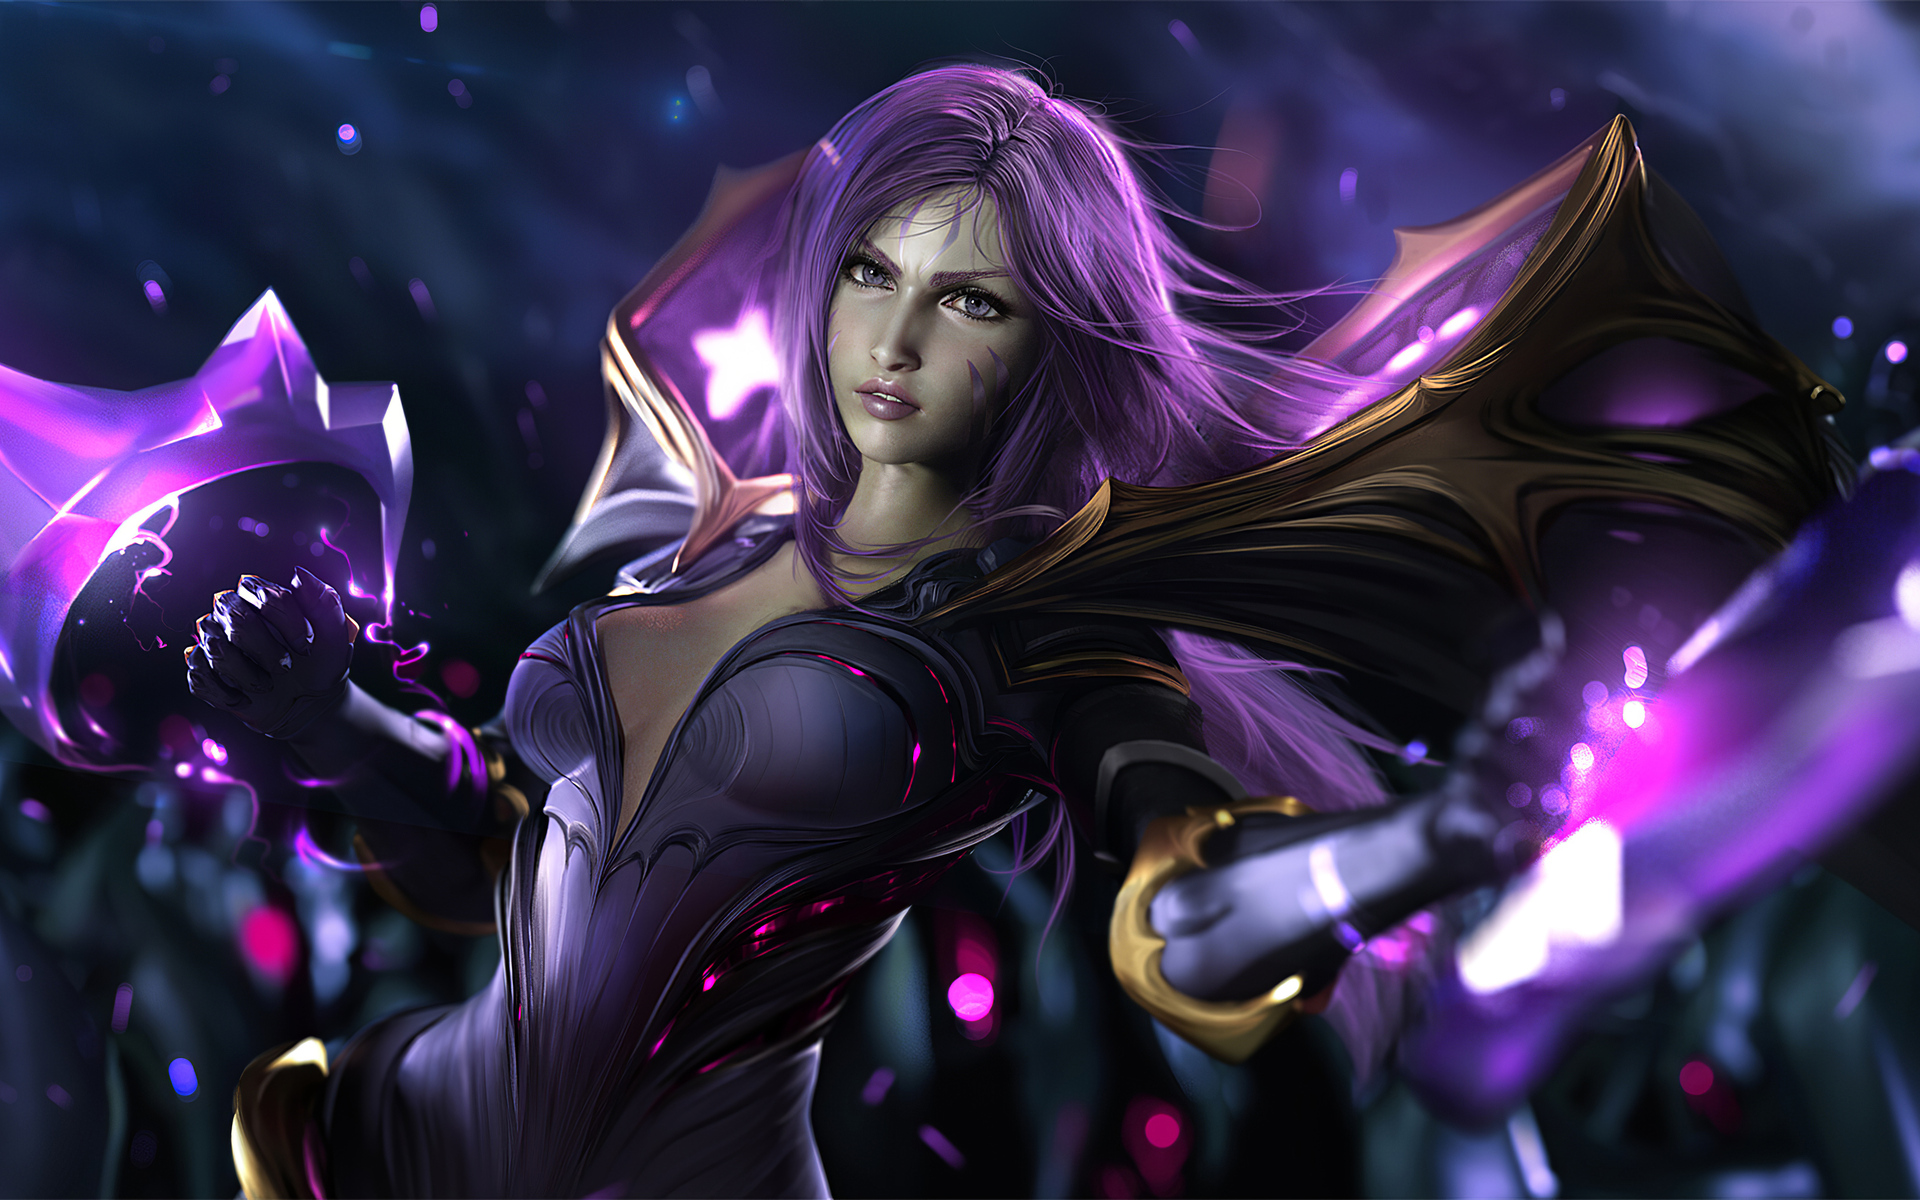 kaisa-league-of-legends-4k-2020-4l.jpg